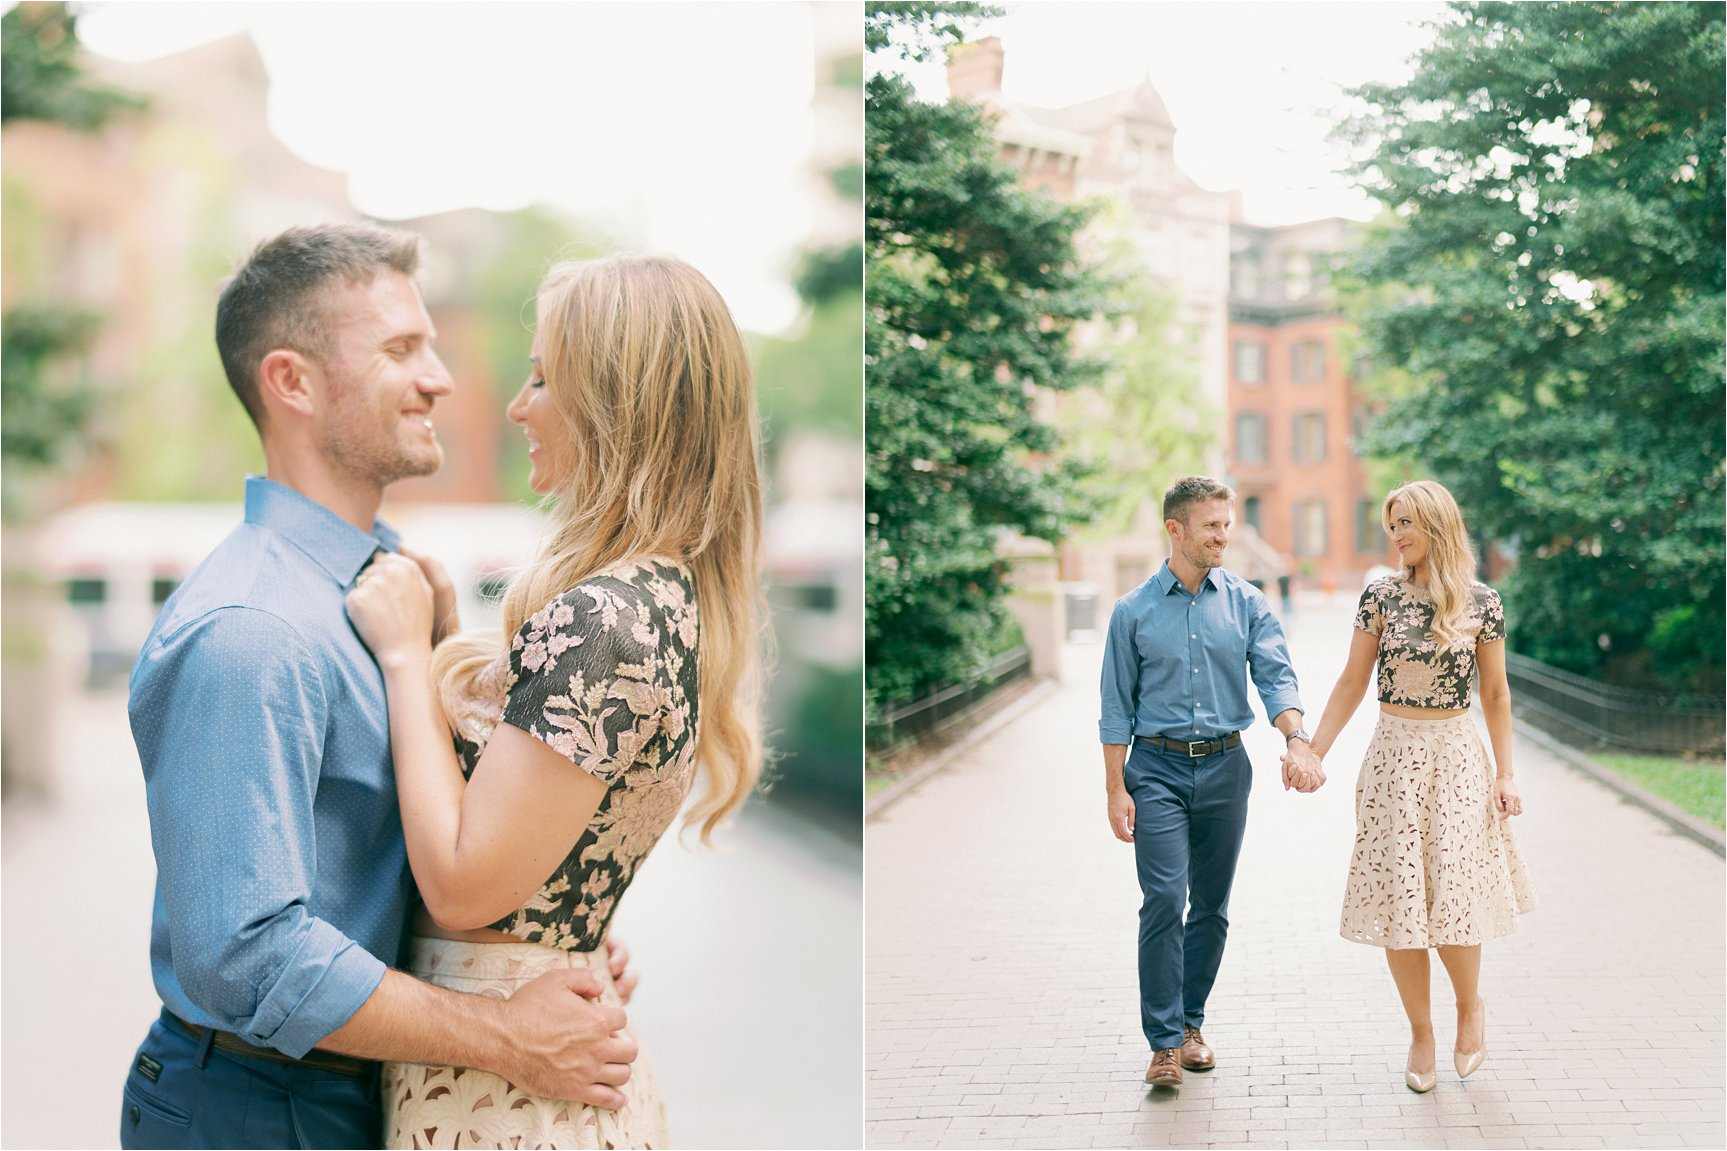 Philly_Engagement_Shoot185.JPG